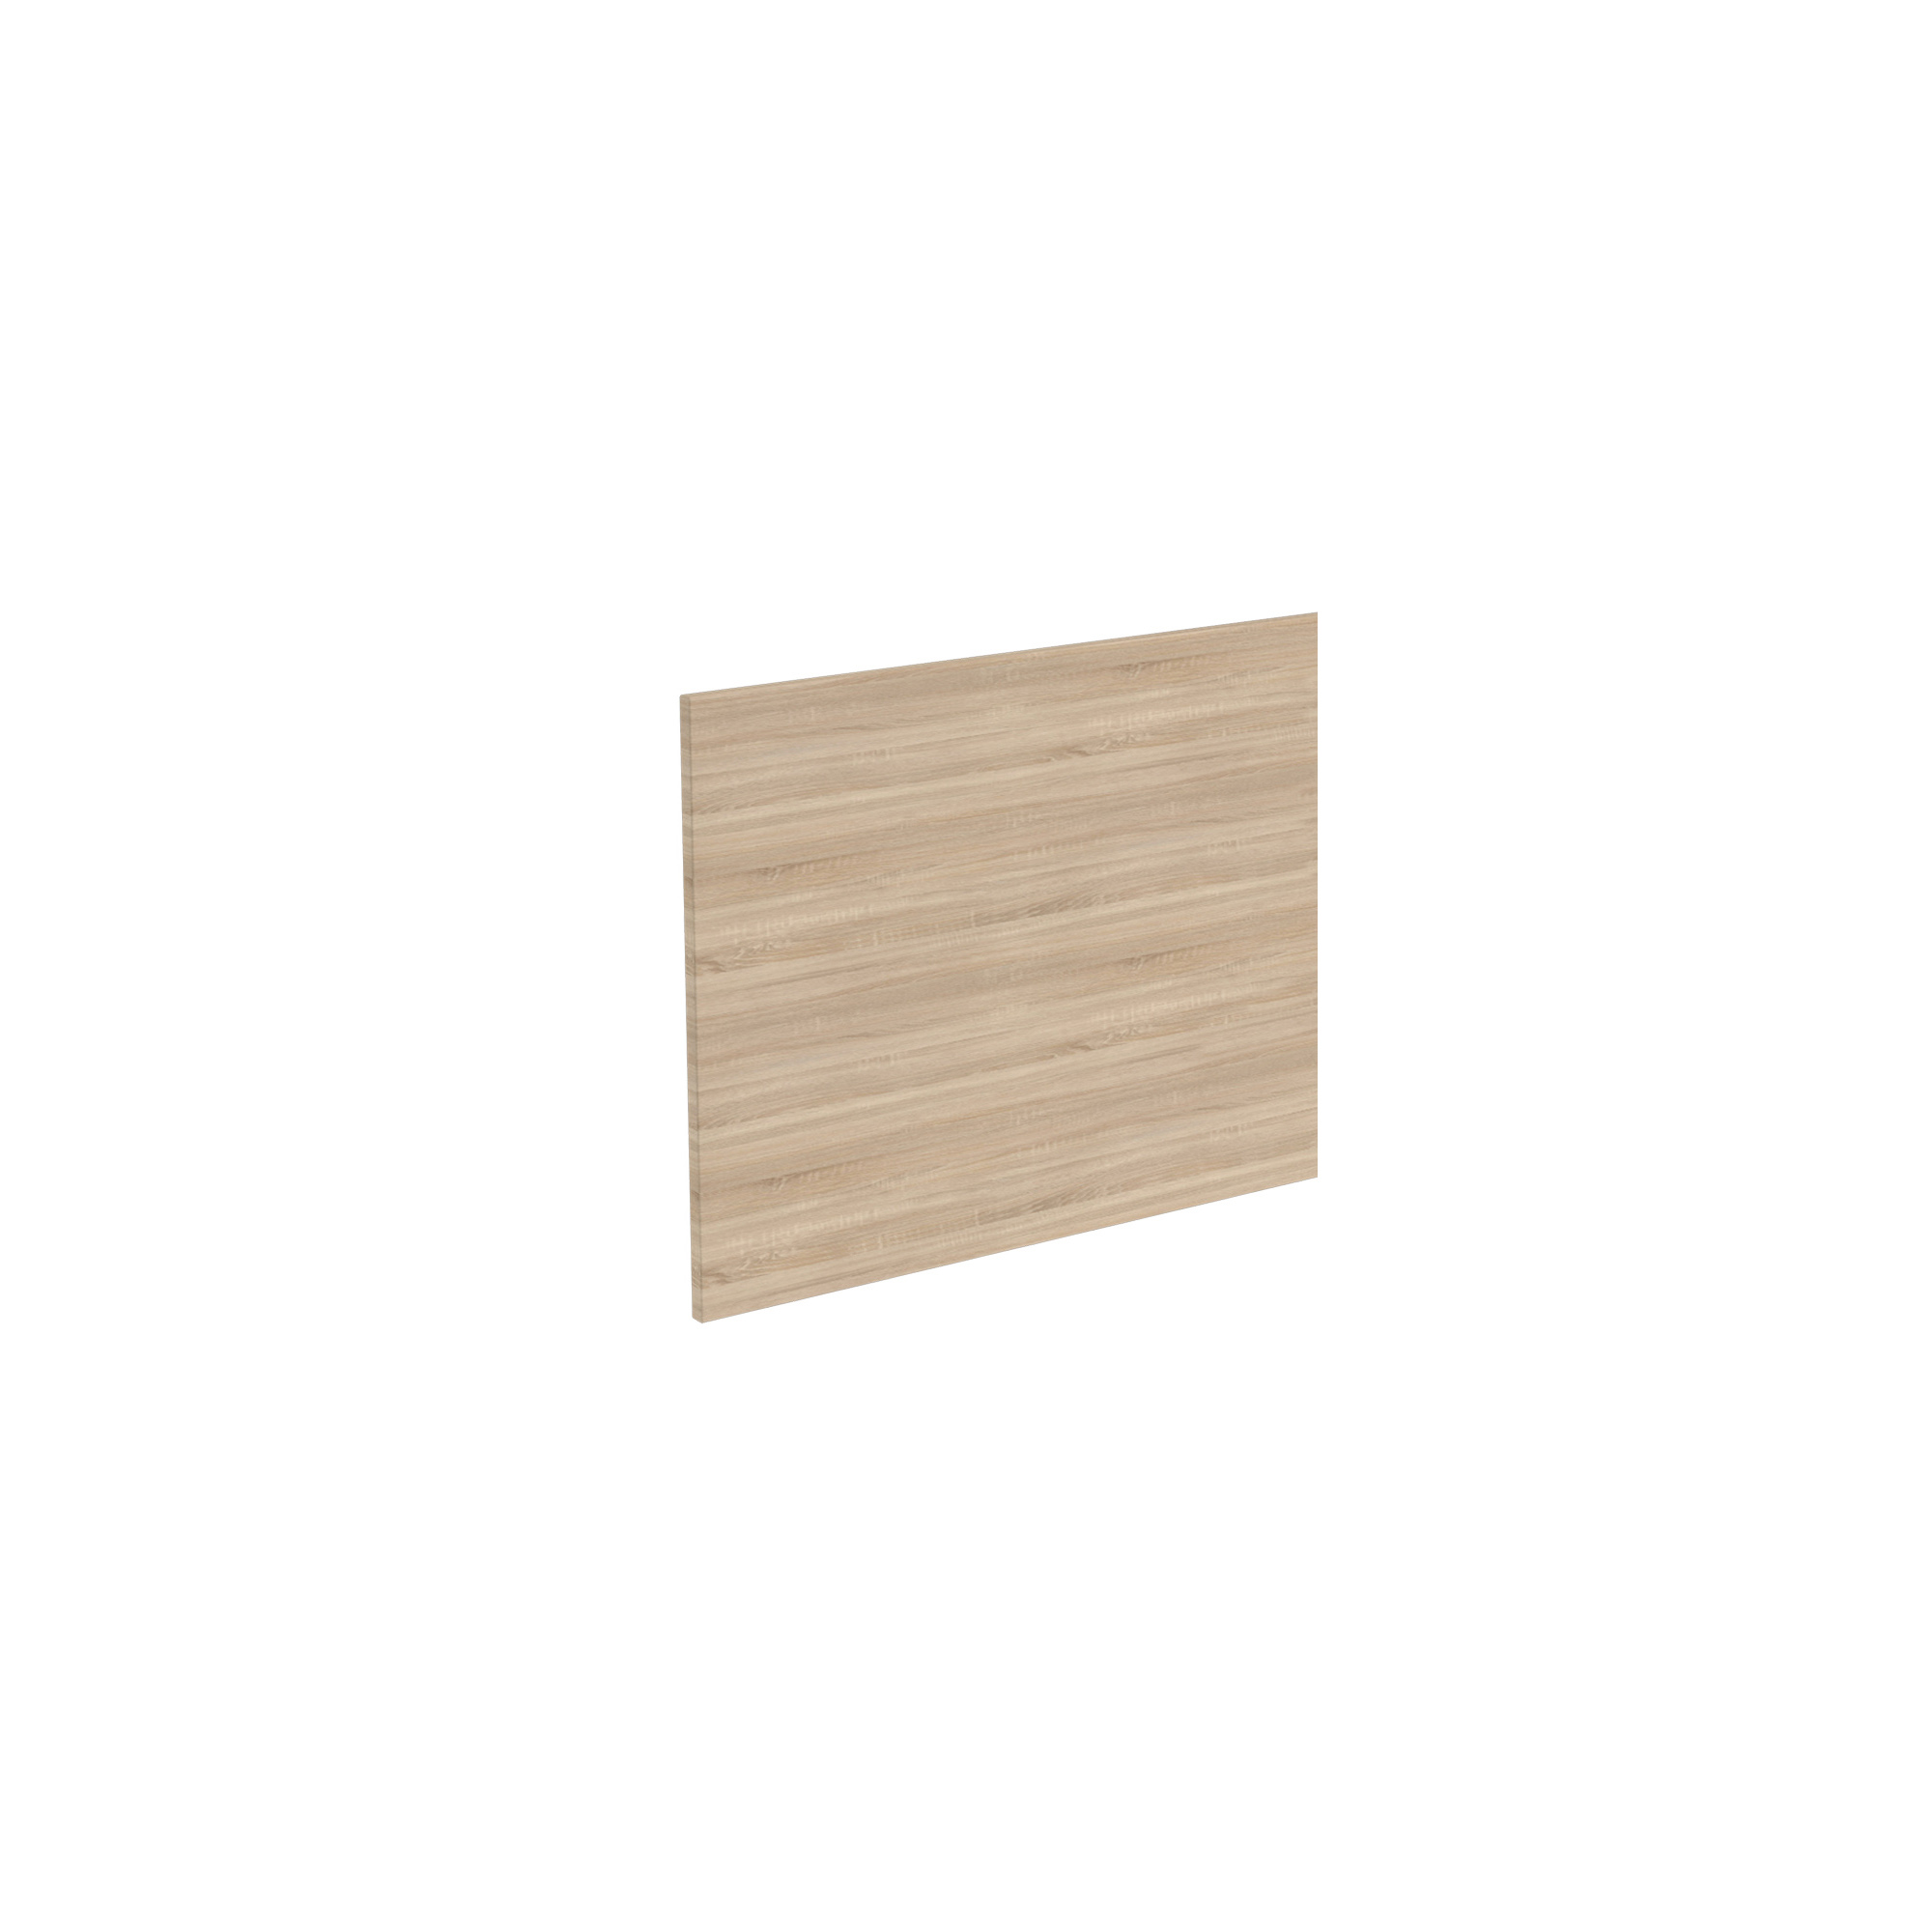 K-Vit Ikon 750mm Bath Panel - Natural Oak